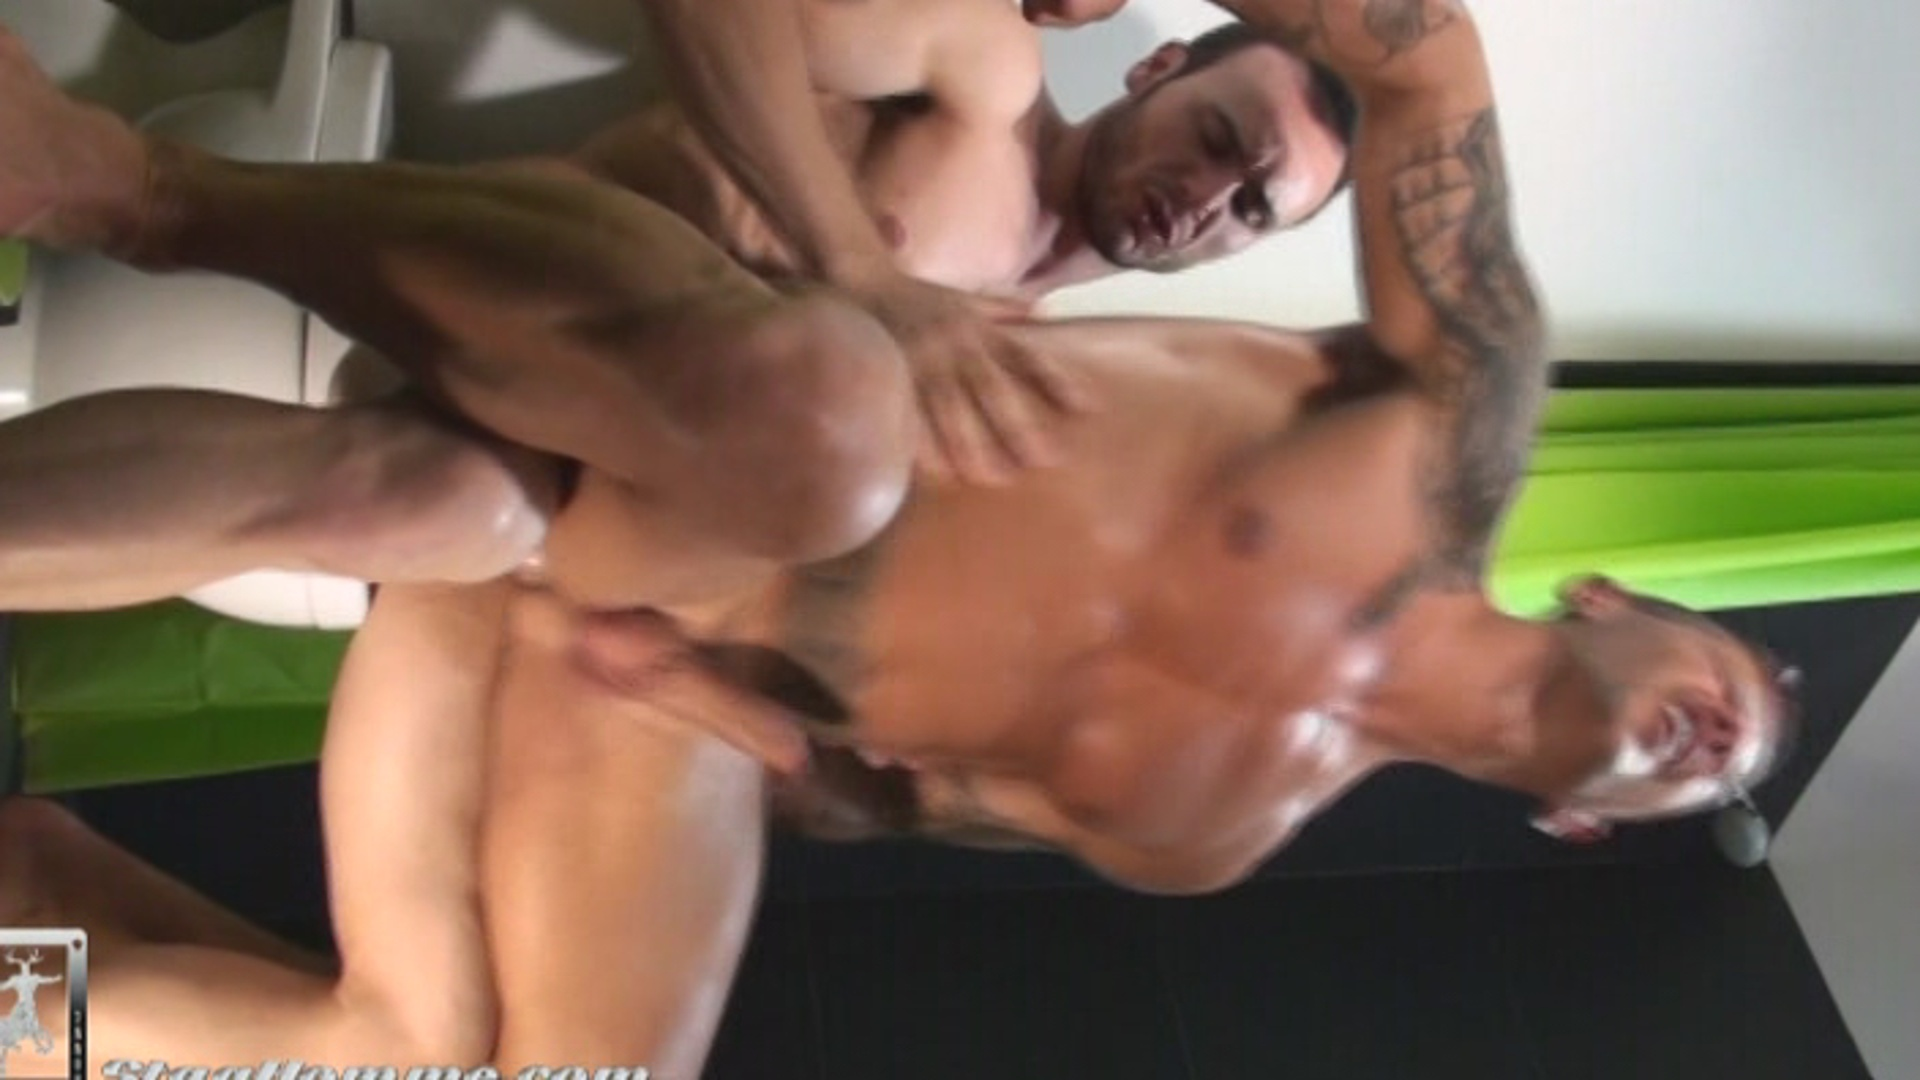 Stag You Stag Me Xvideo gay